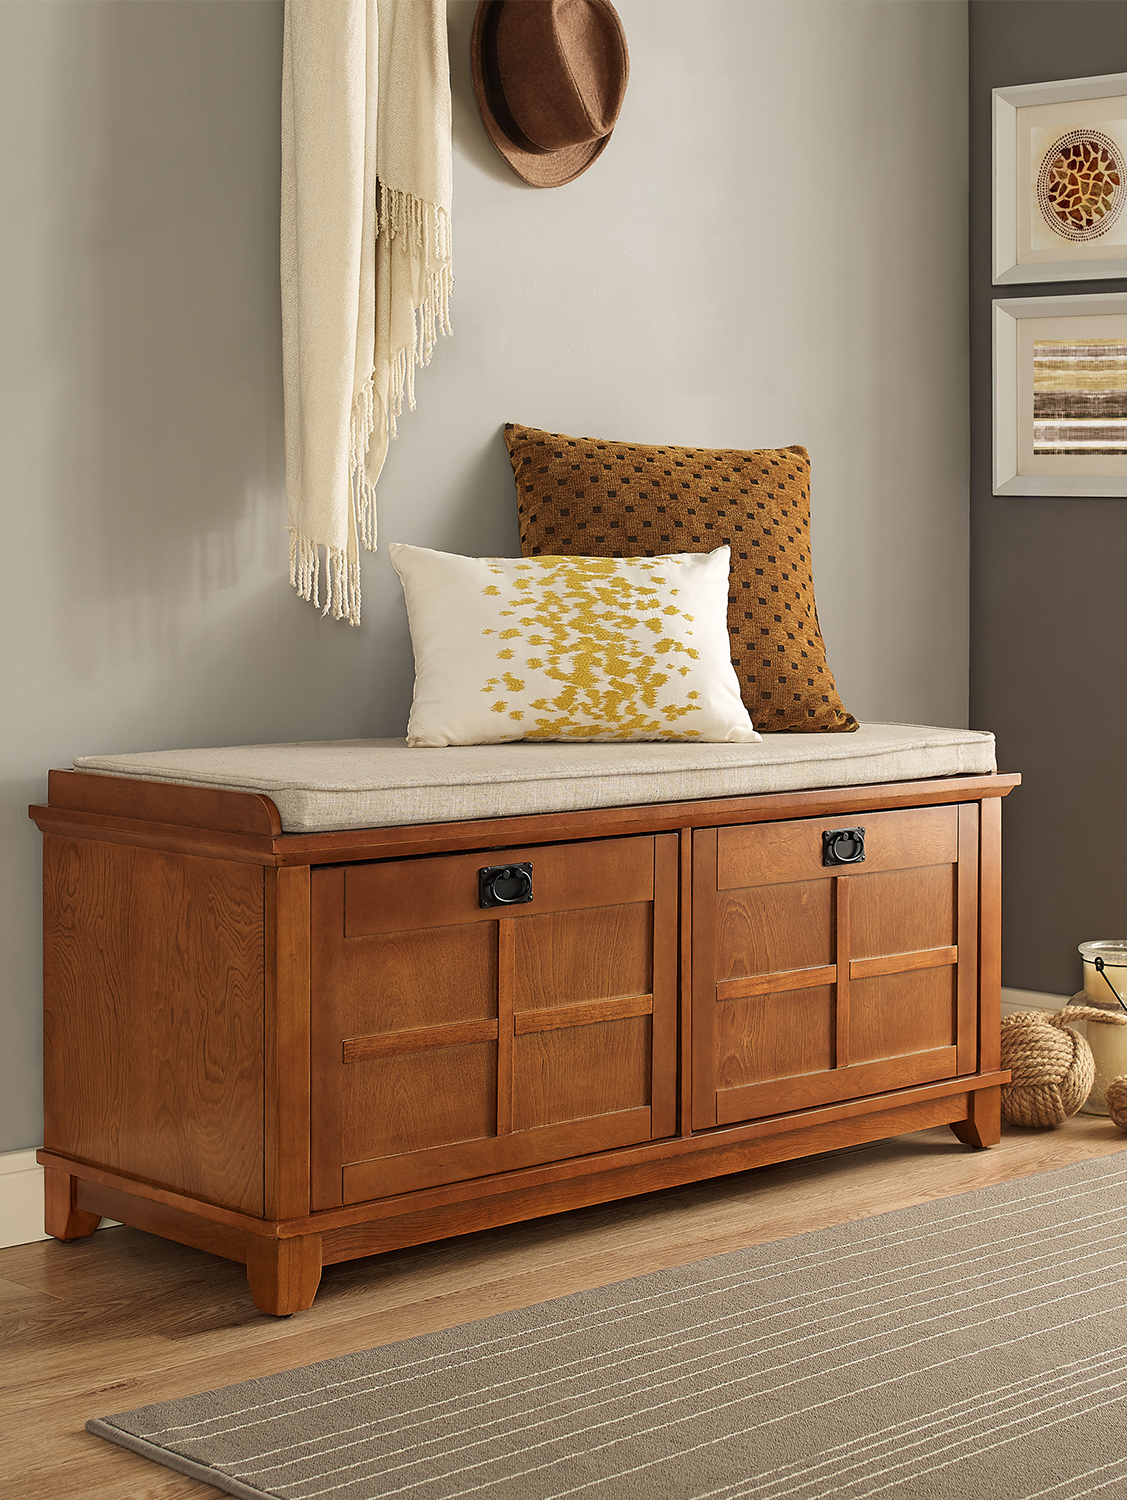 Adler Entryway Storage Bench